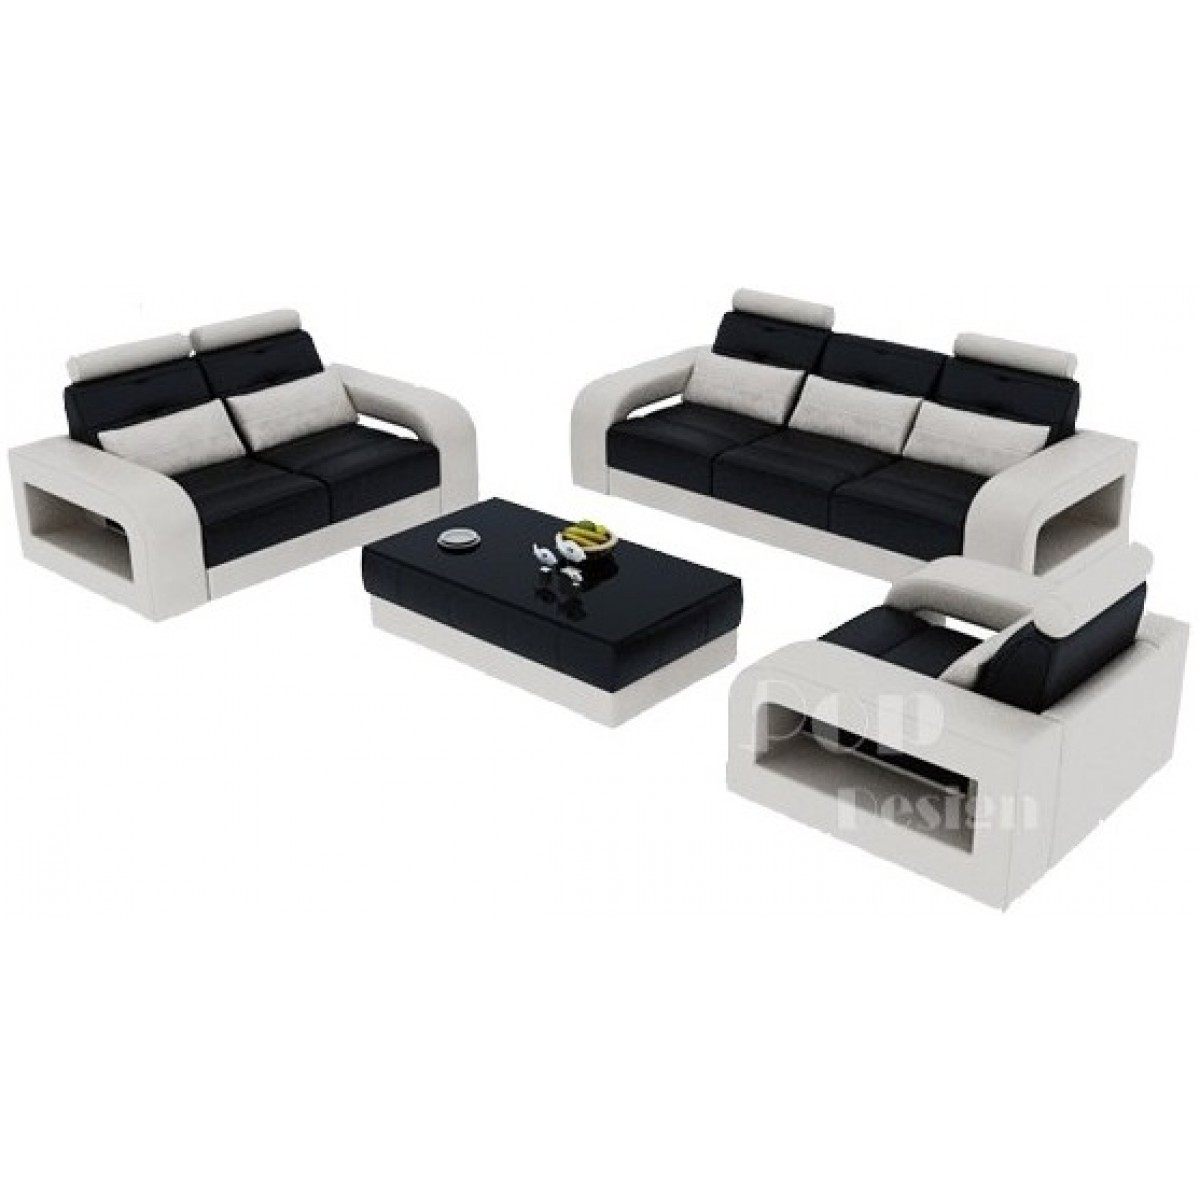 Salon set canap s personnalisable en cuir design salerno for Canape cuir design